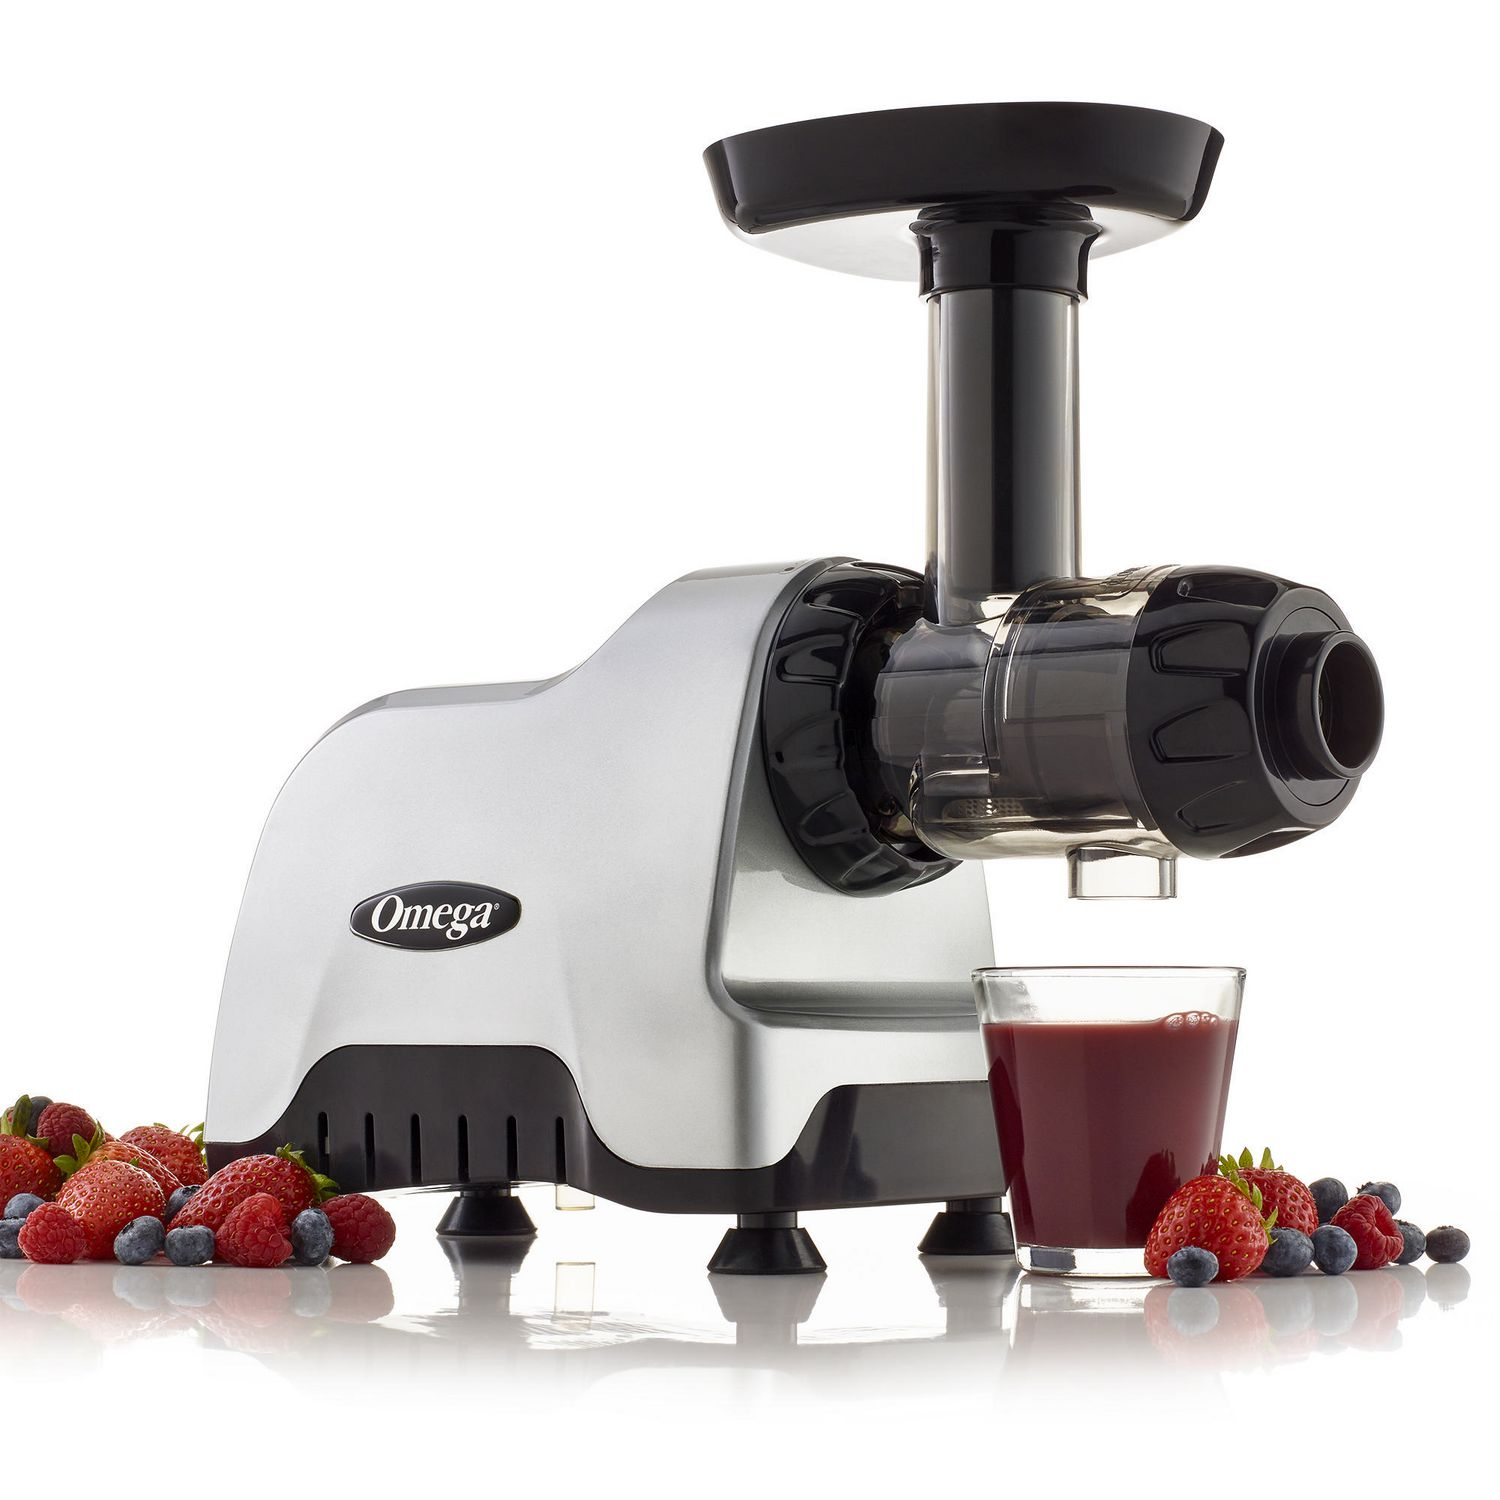 Black and stainless steel Omega compact cold press masticating juicer and nutrition system with sliced berries and glass of juice at its base - best cold press juicer